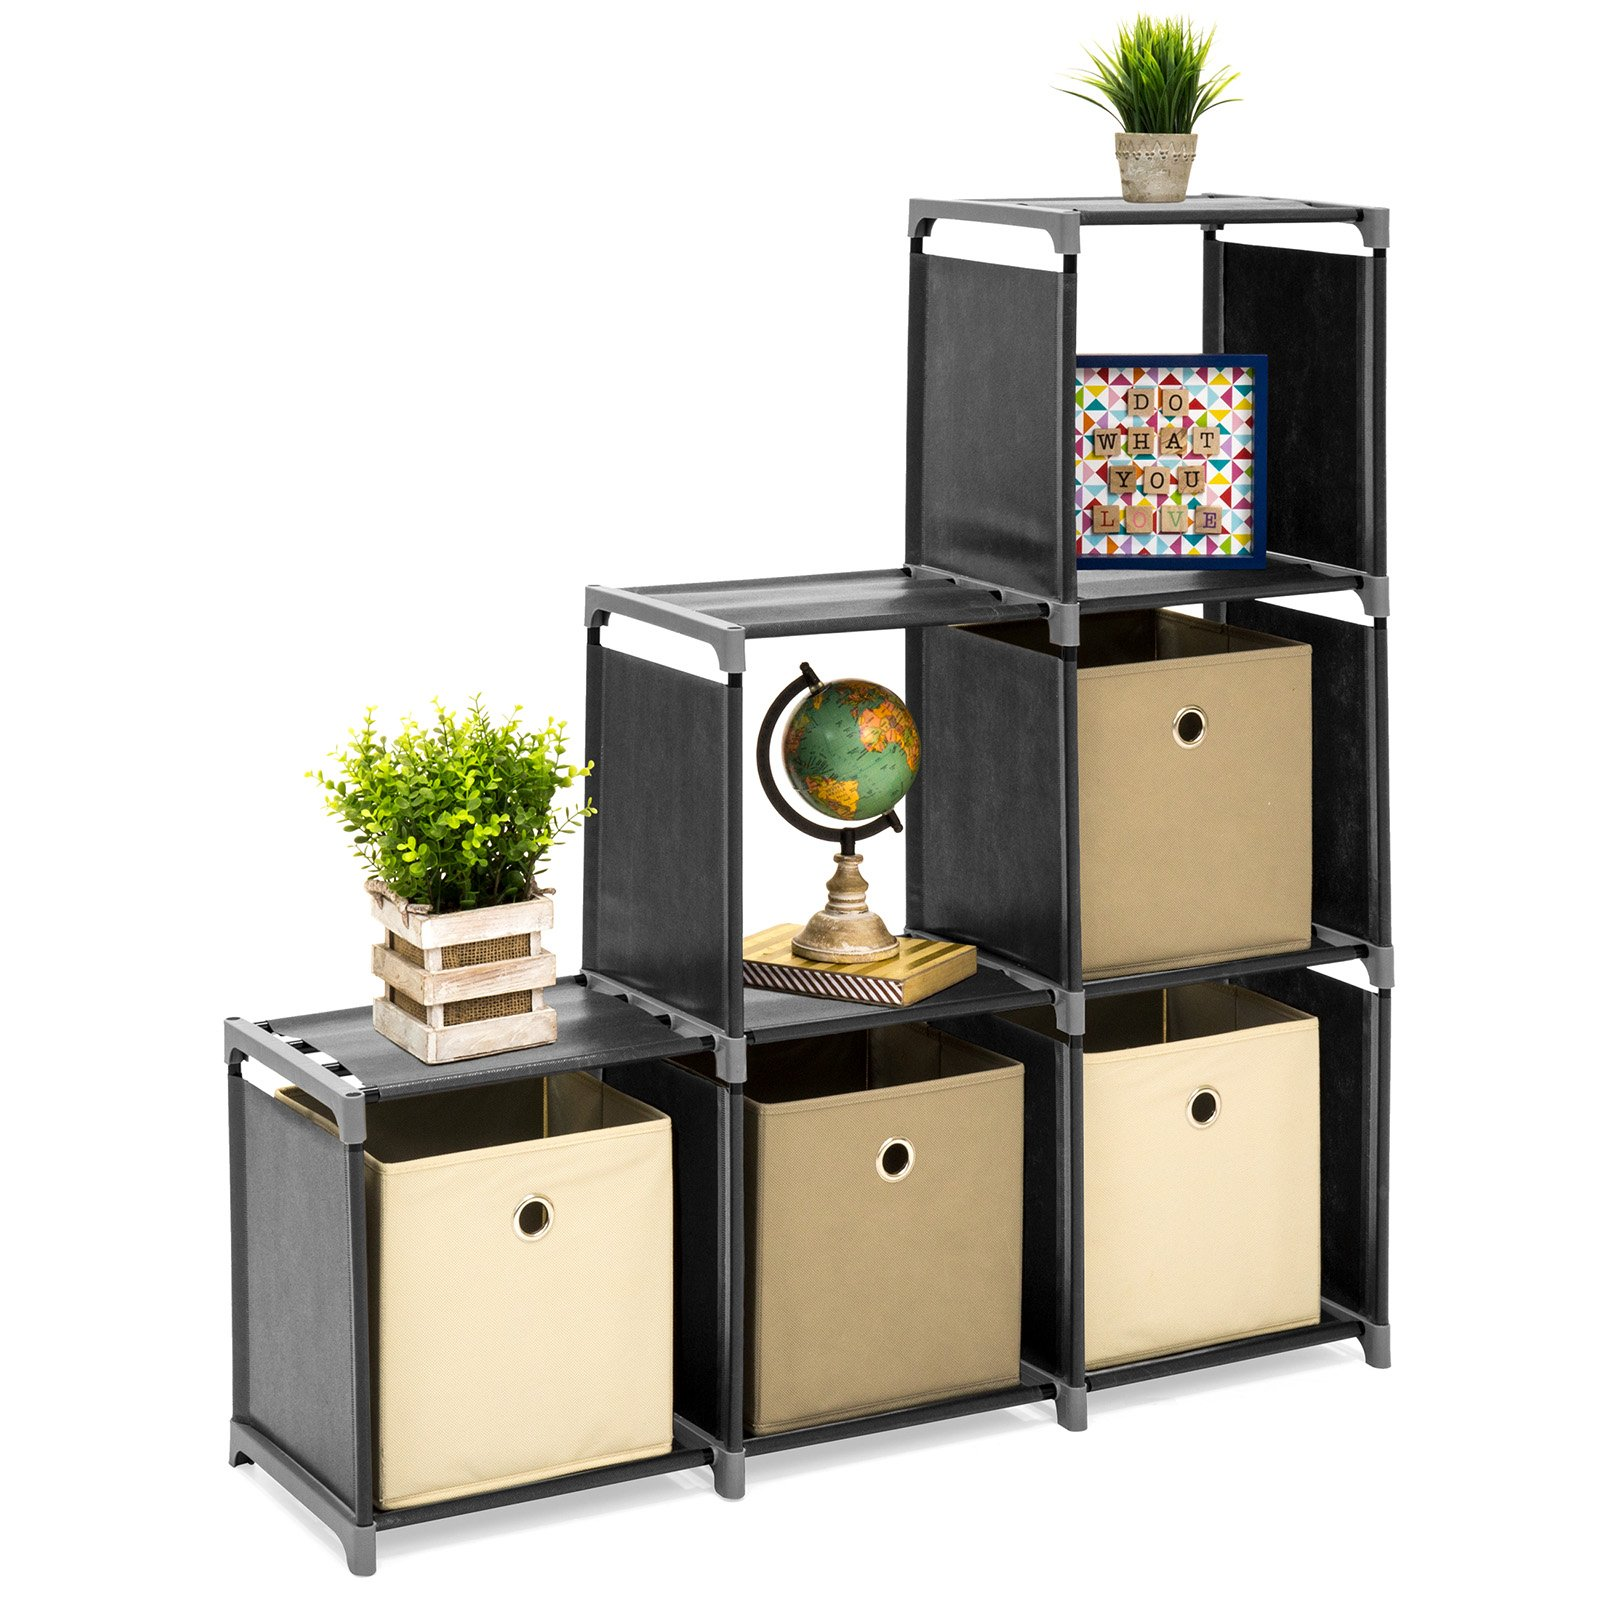 Best Choice Products 6-Drawer Multi-Purpose Shelving Cubby Storage Cabinet (Black) by Best Choice Products (Image #7)